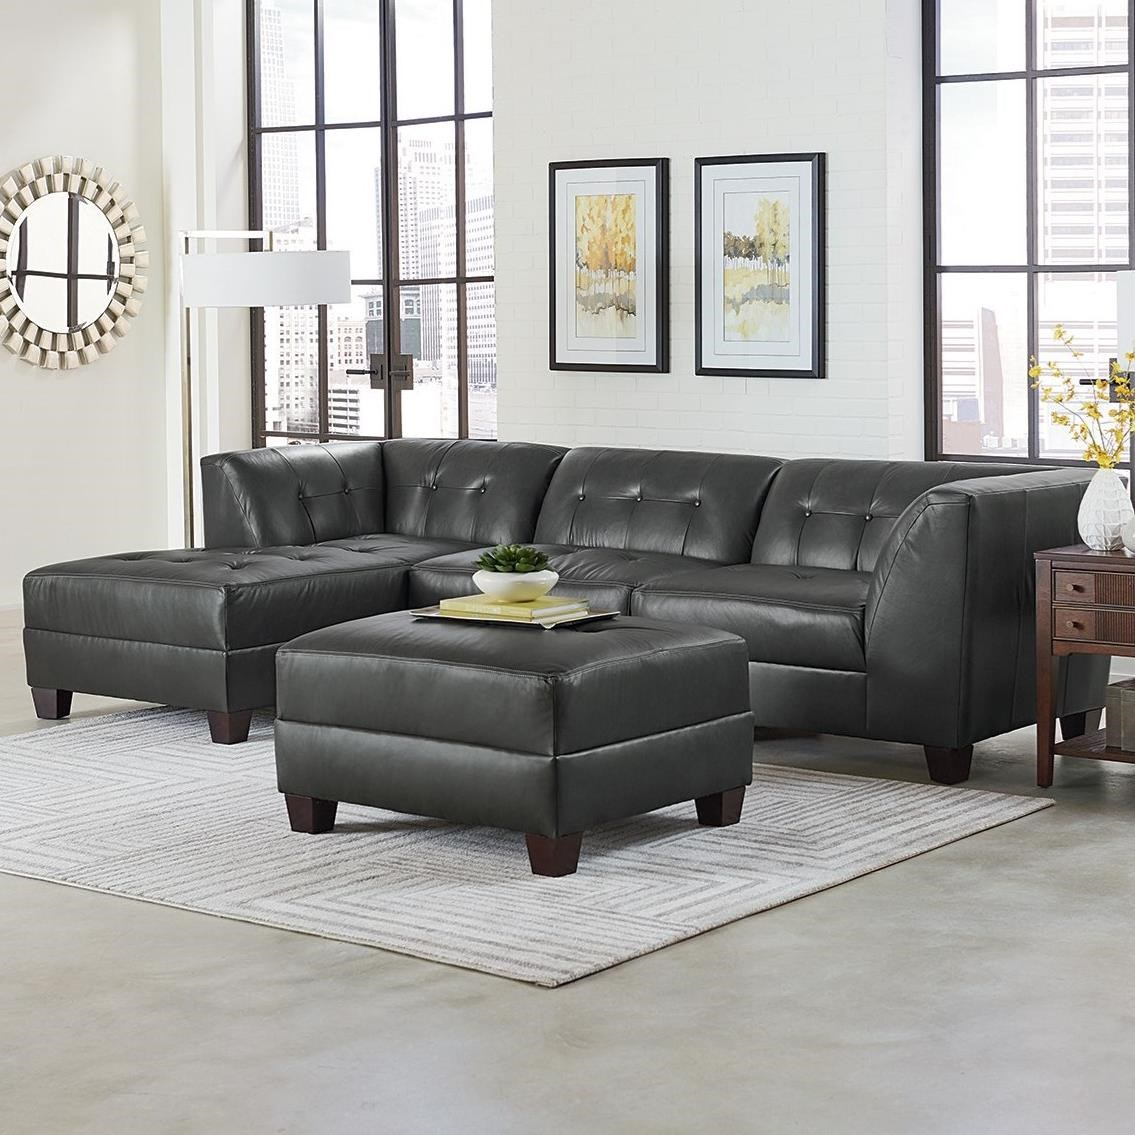 England Miller Three Piece Sectional Sofa with Chaise ...